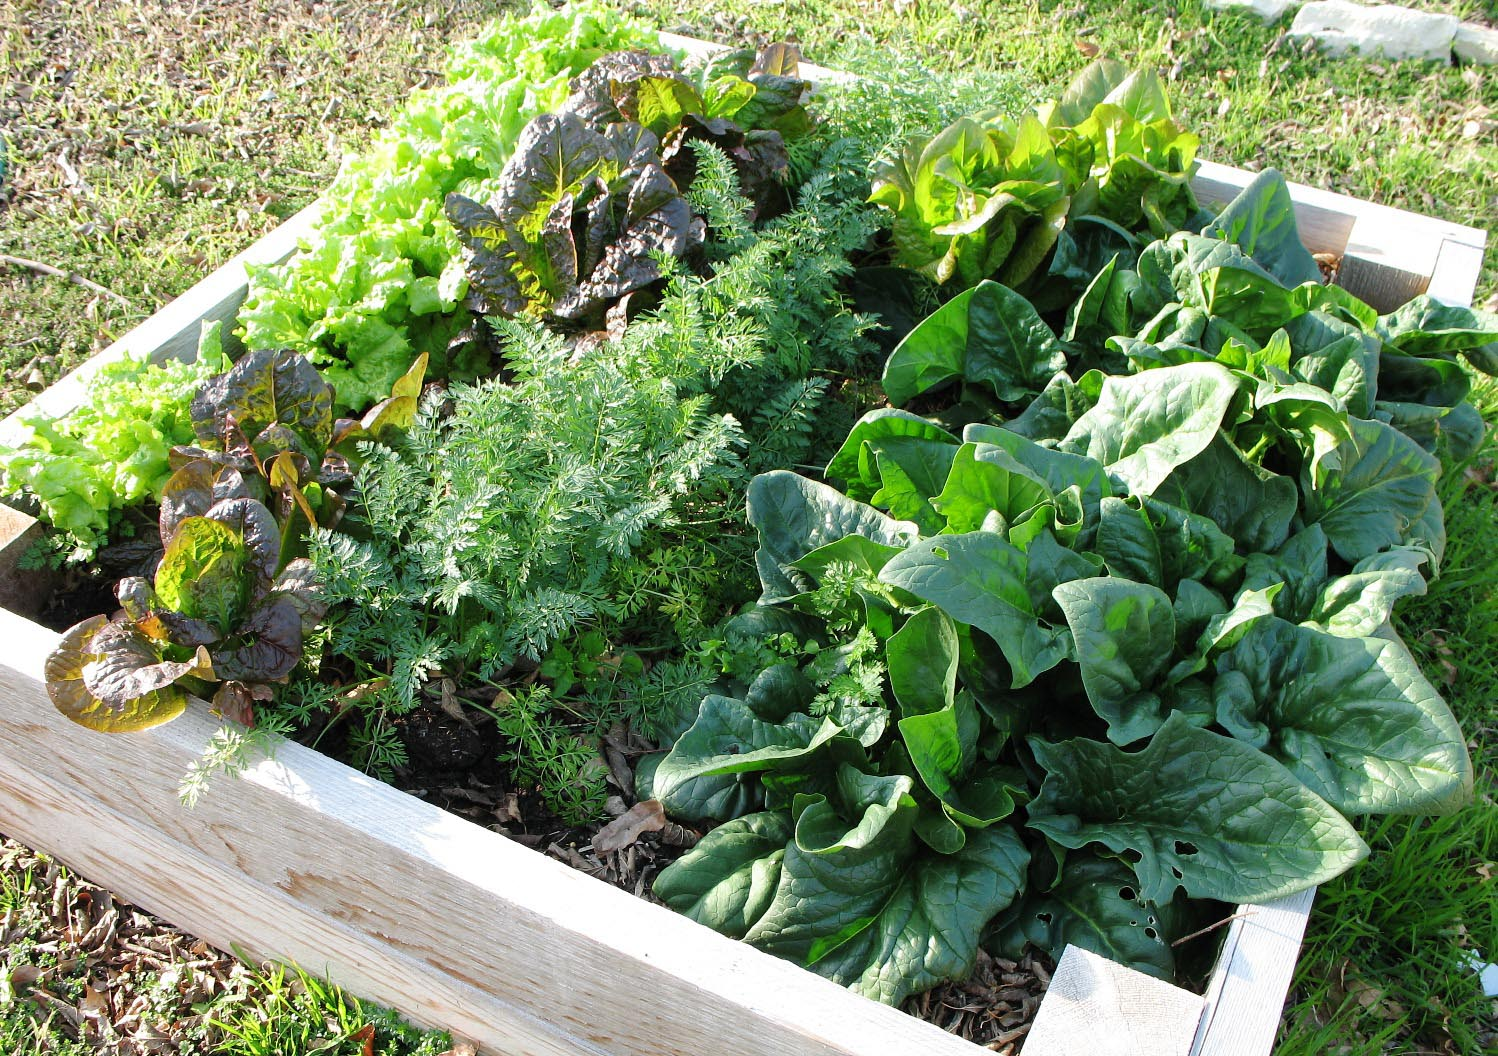 Most Popular Vegetable Garden Plants